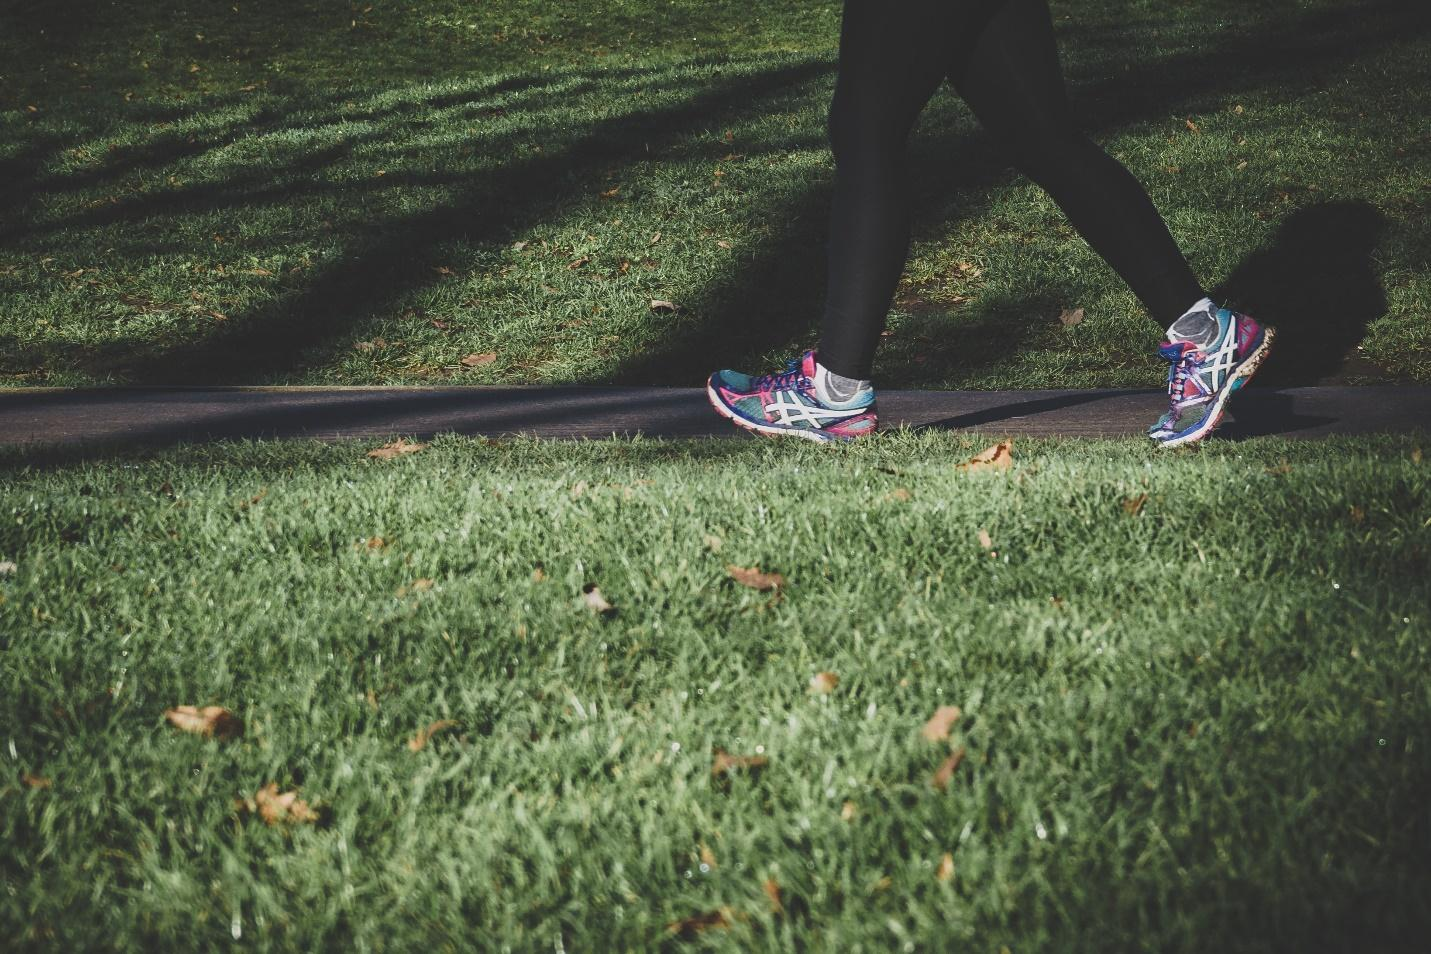 5 Easy Target Exercises to Lose Belly Fat - Brisk Walking